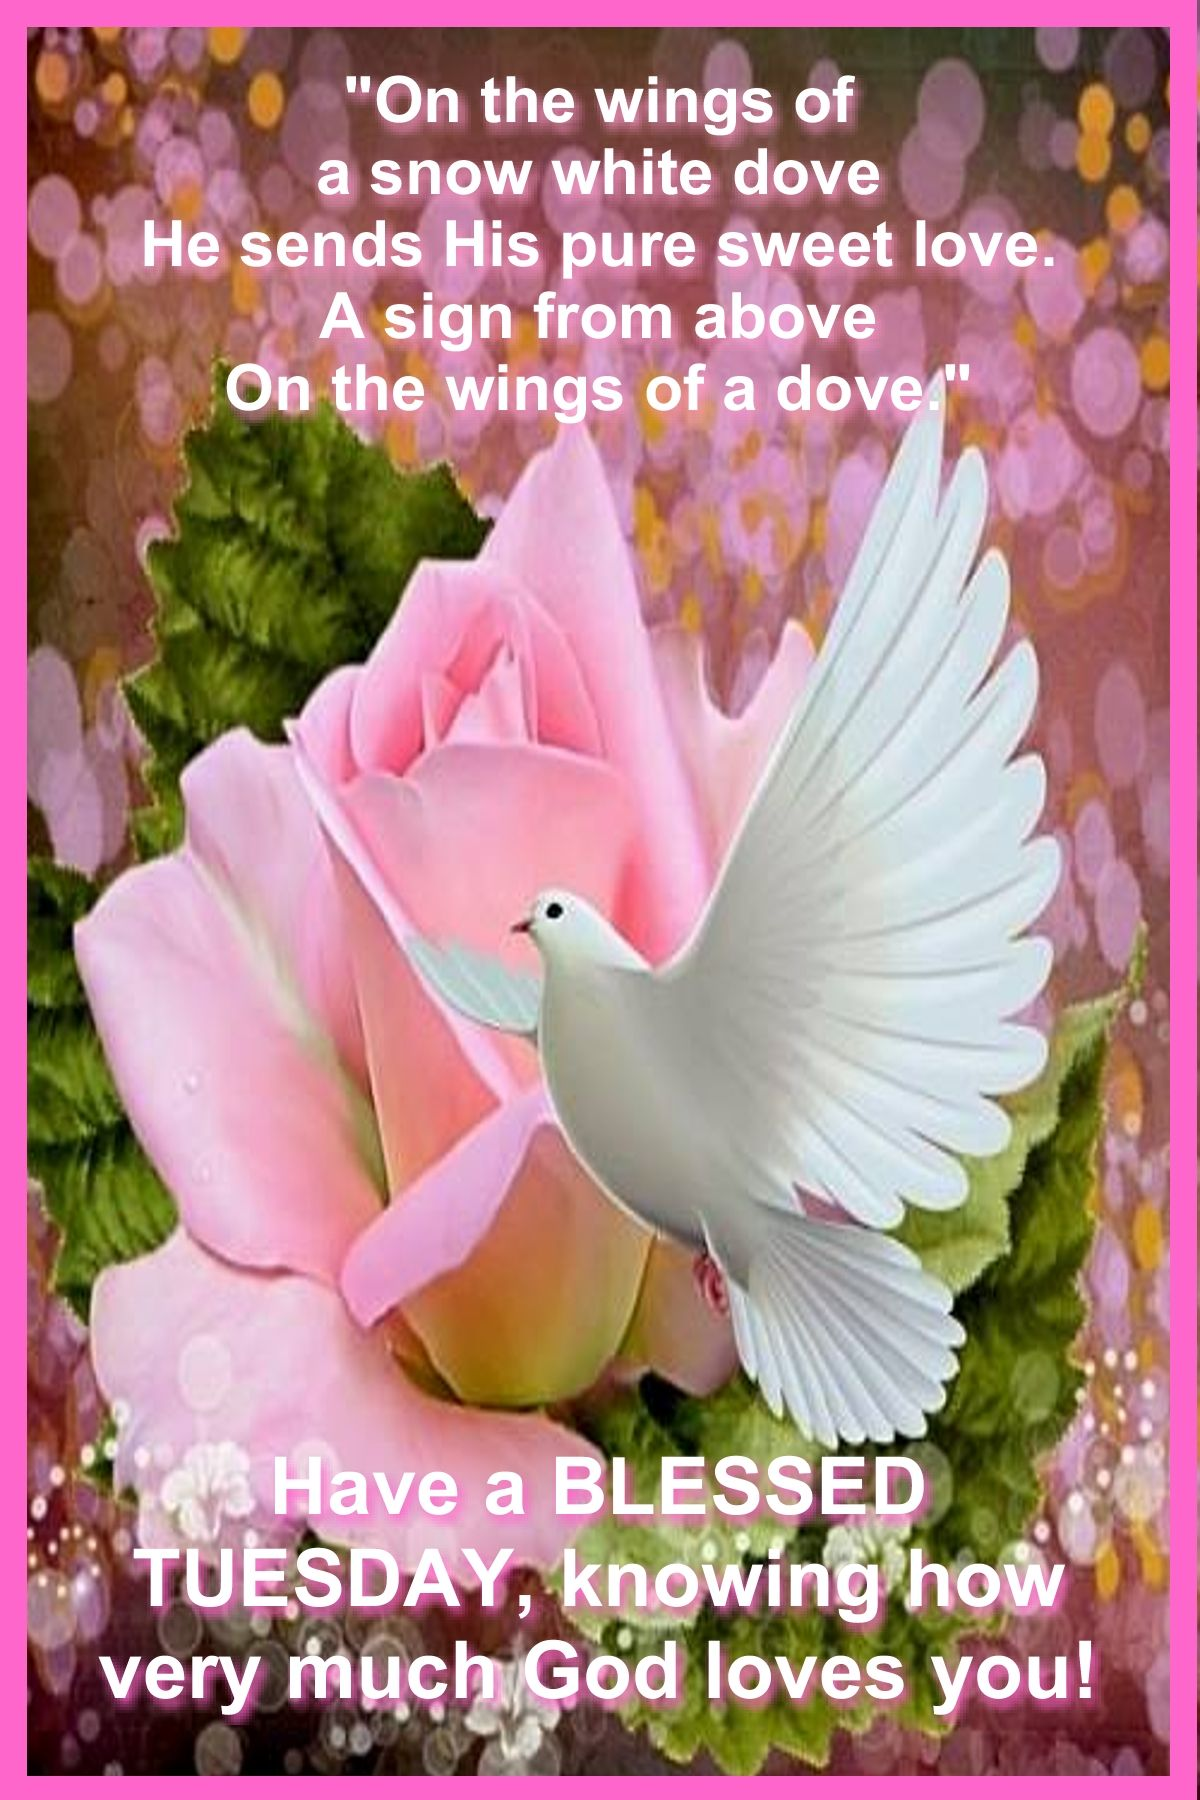 Good Morning Christian Quotes Pinrosa Well On Tuesday Blessings  Pinterest  Tuesday